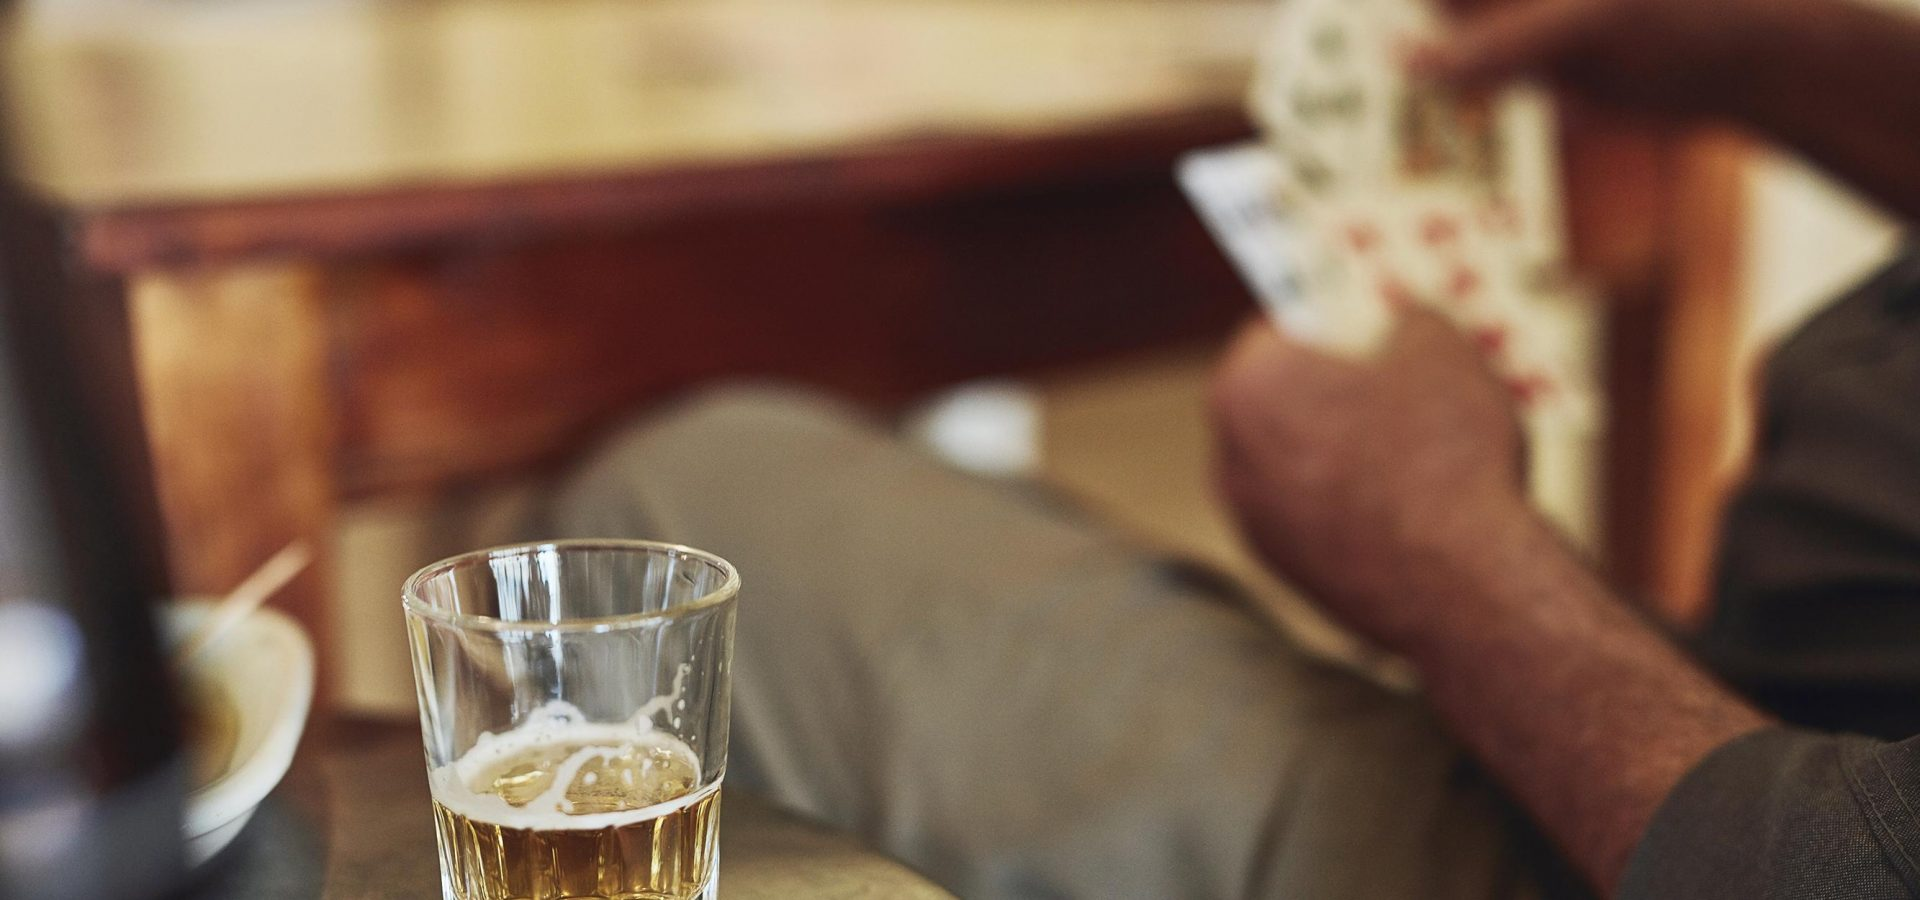 Stay Safe at Home, but Alcohol is not a Coping Mechanism